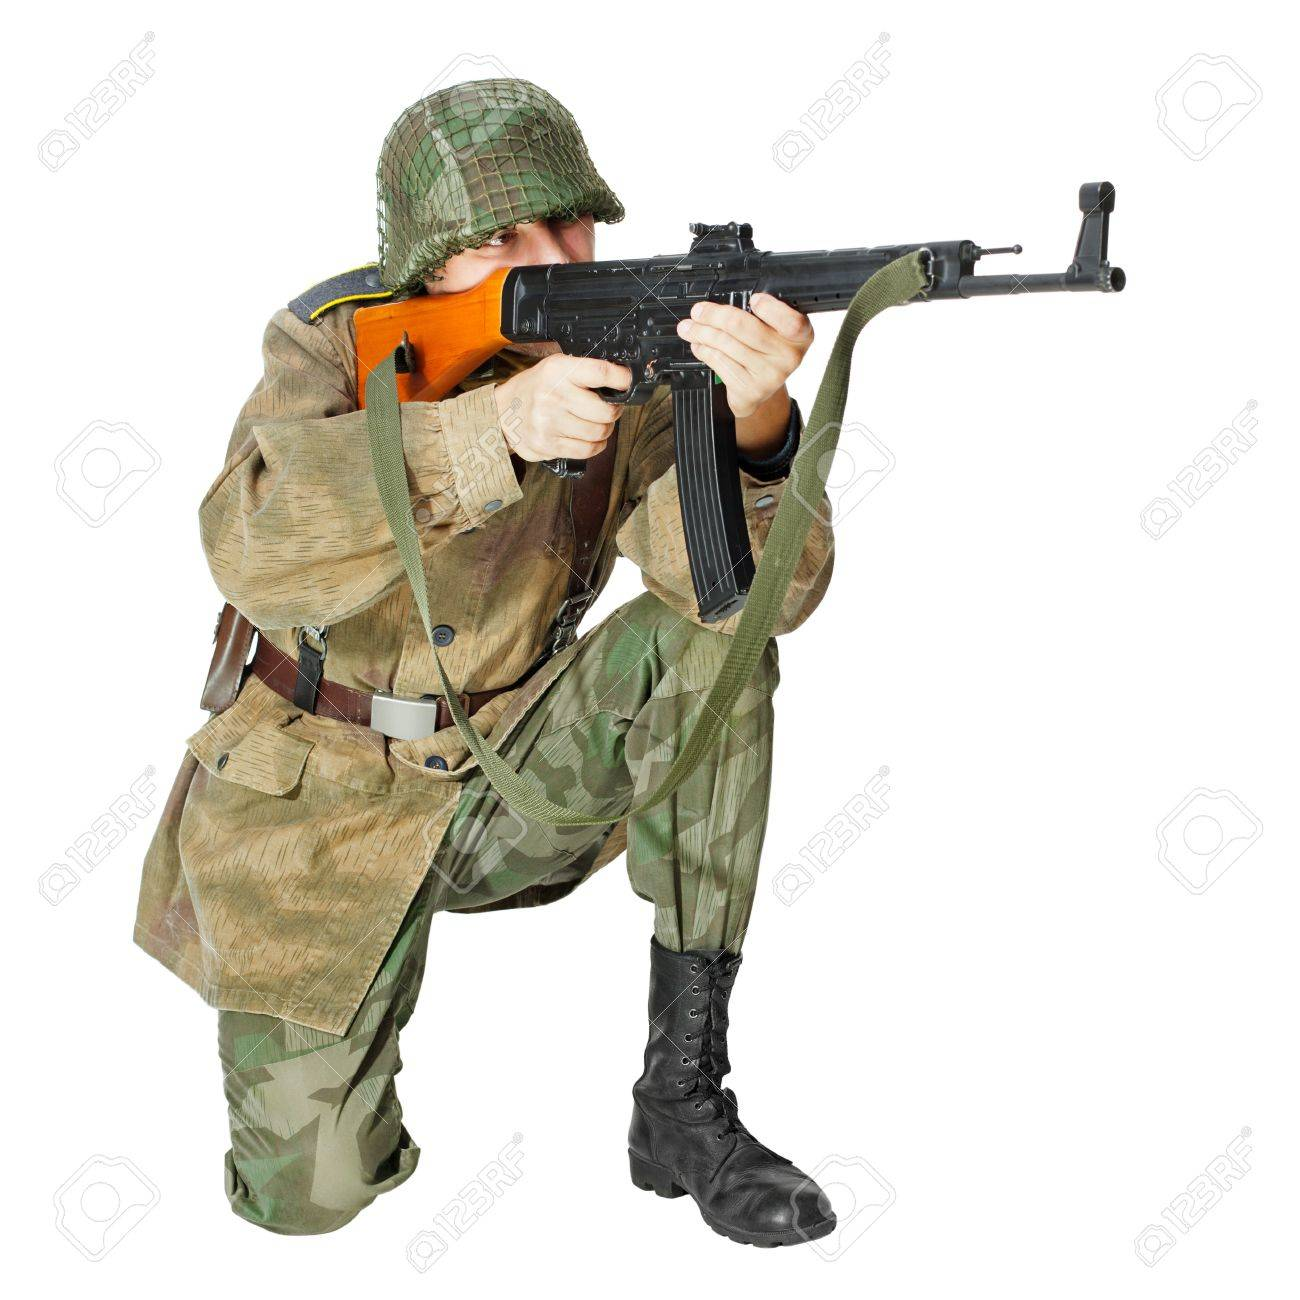 Soldier with submachine gun, second world war style  Isolated on white background Stock Photo - 17478069